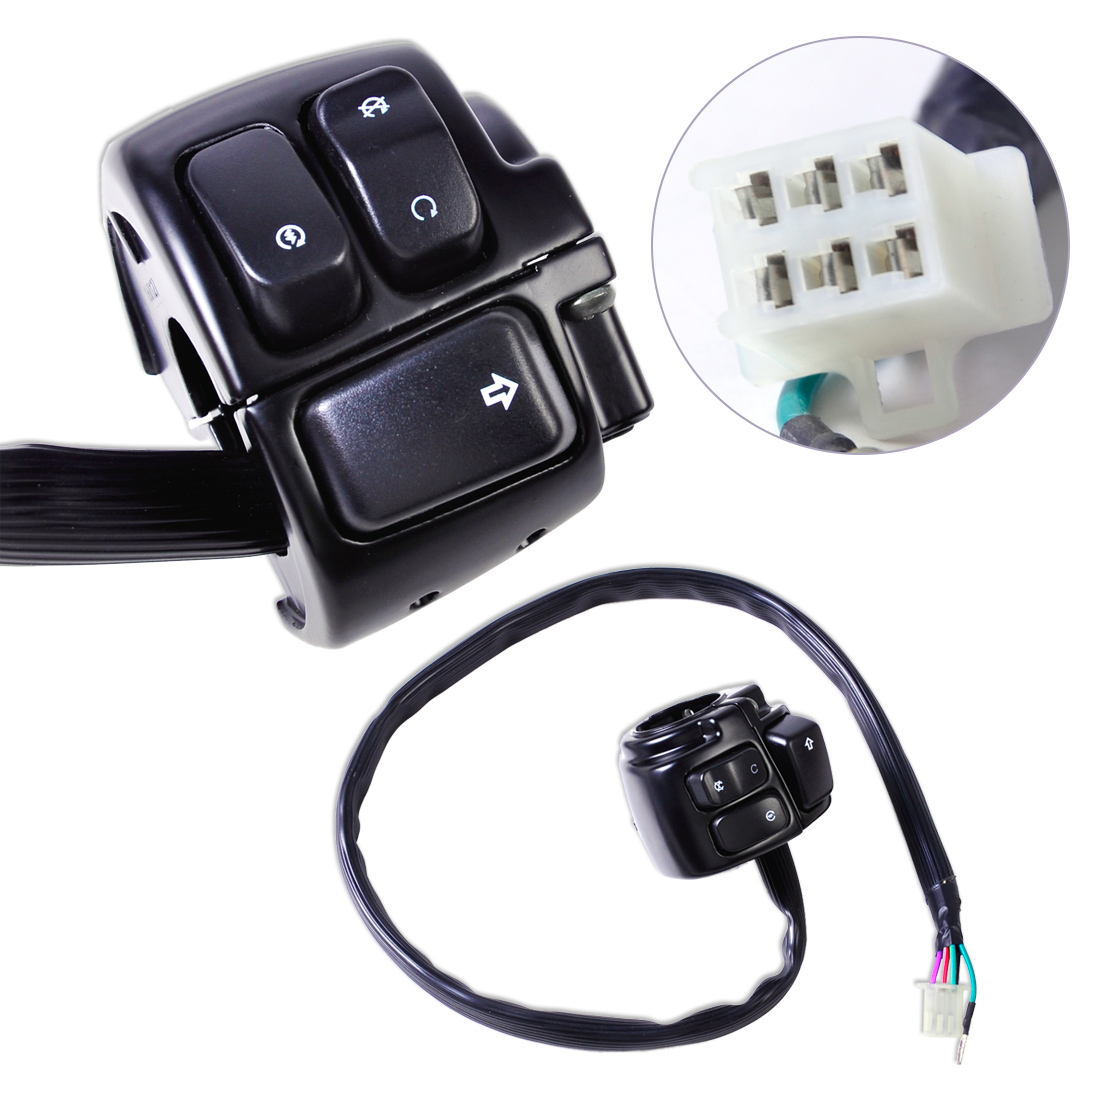 US $22.62 18% OFF|DWCX New Motorcycle 1 on